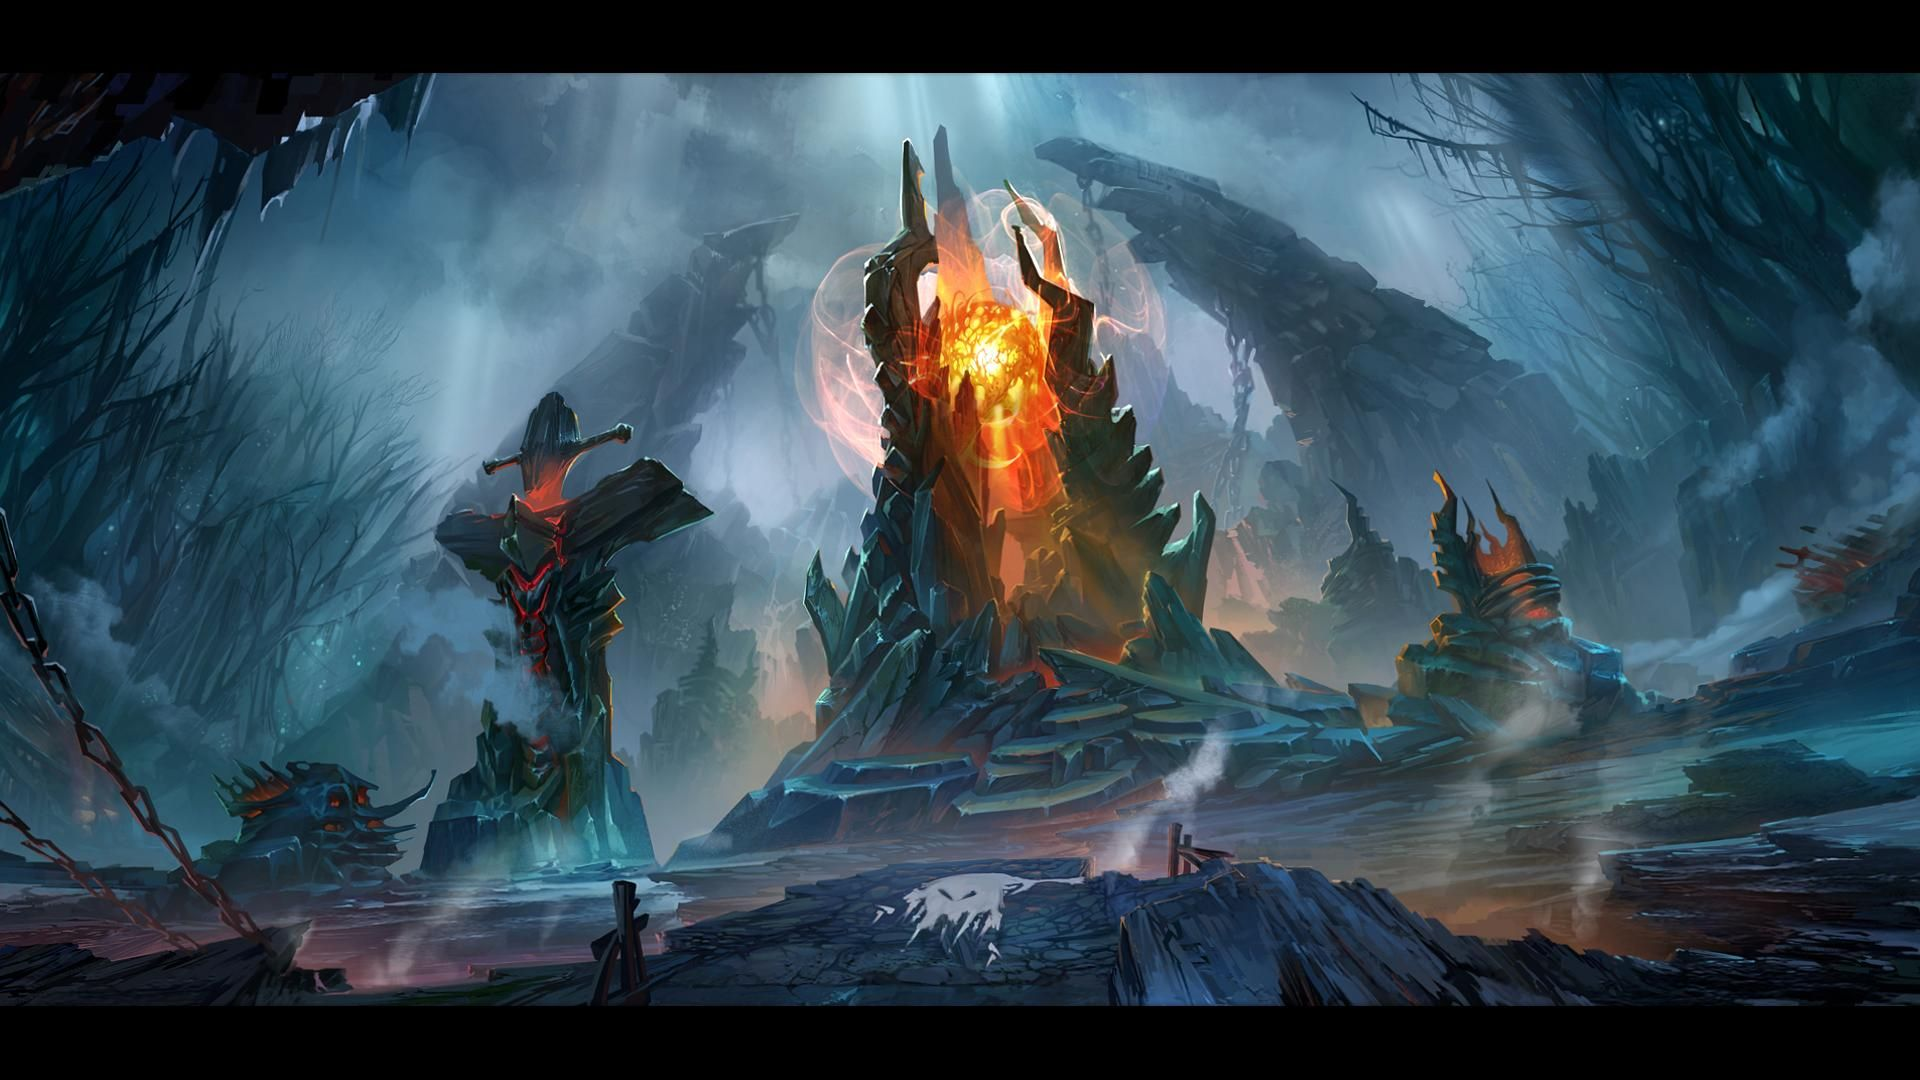 The dire throne wallpaper more httpdota2wallsmiscthe dire dota 2 the dire concept art upscaled wallpaper fresh hd wallpapers for your desktop voltagebd Image collections